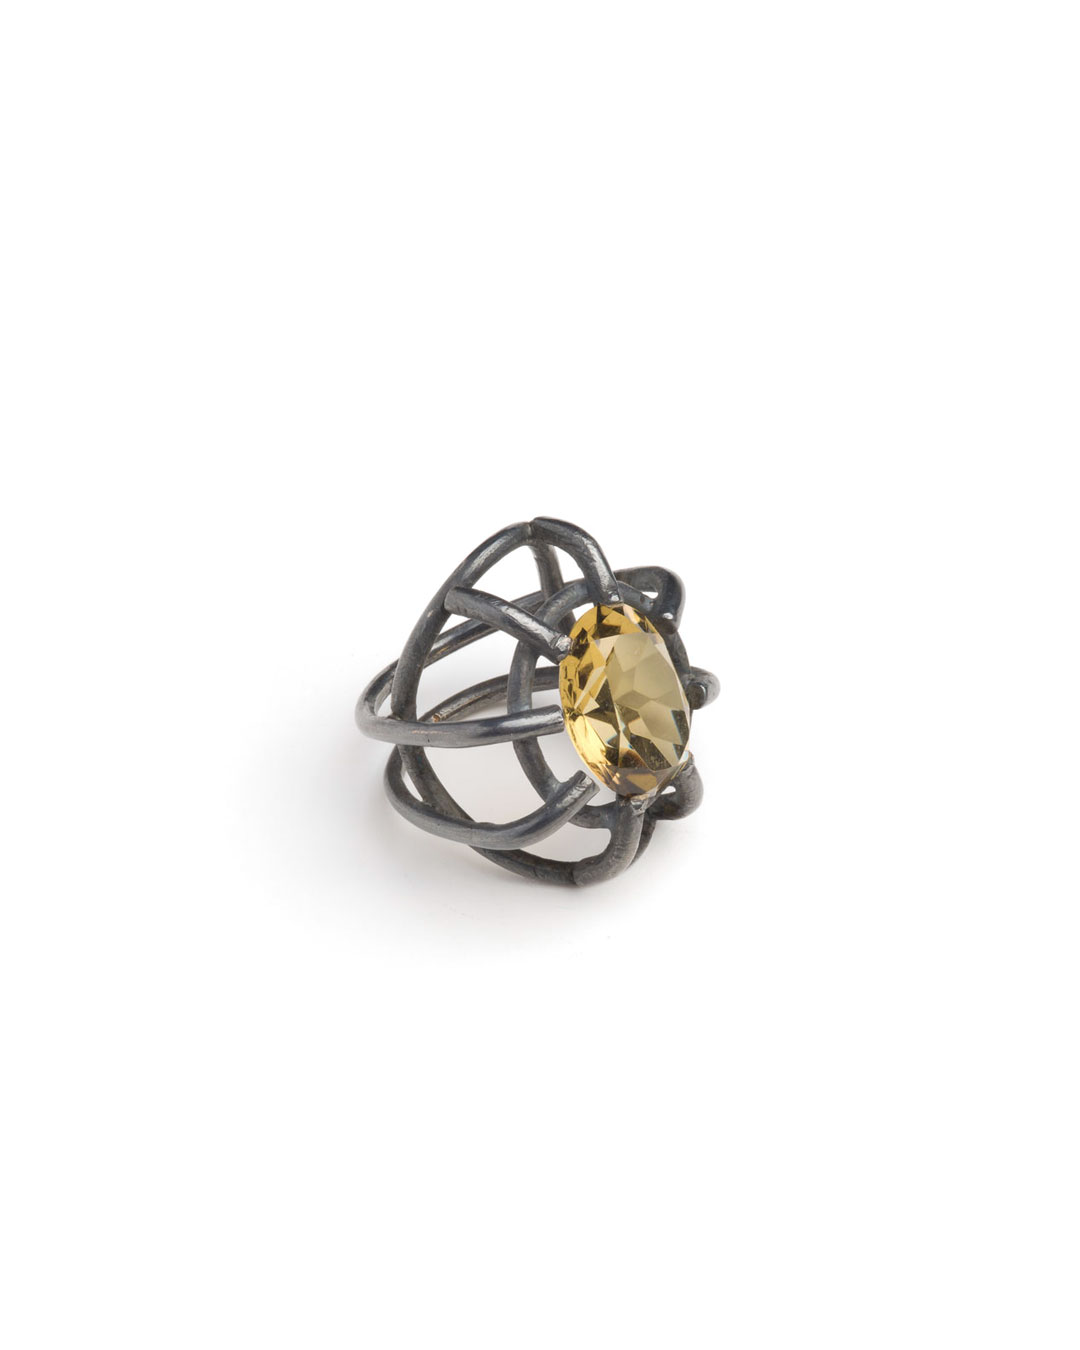 Winfried Krüger, untitled, 1996, ring; oxidised silver, citrine, ø 40 mm, €970